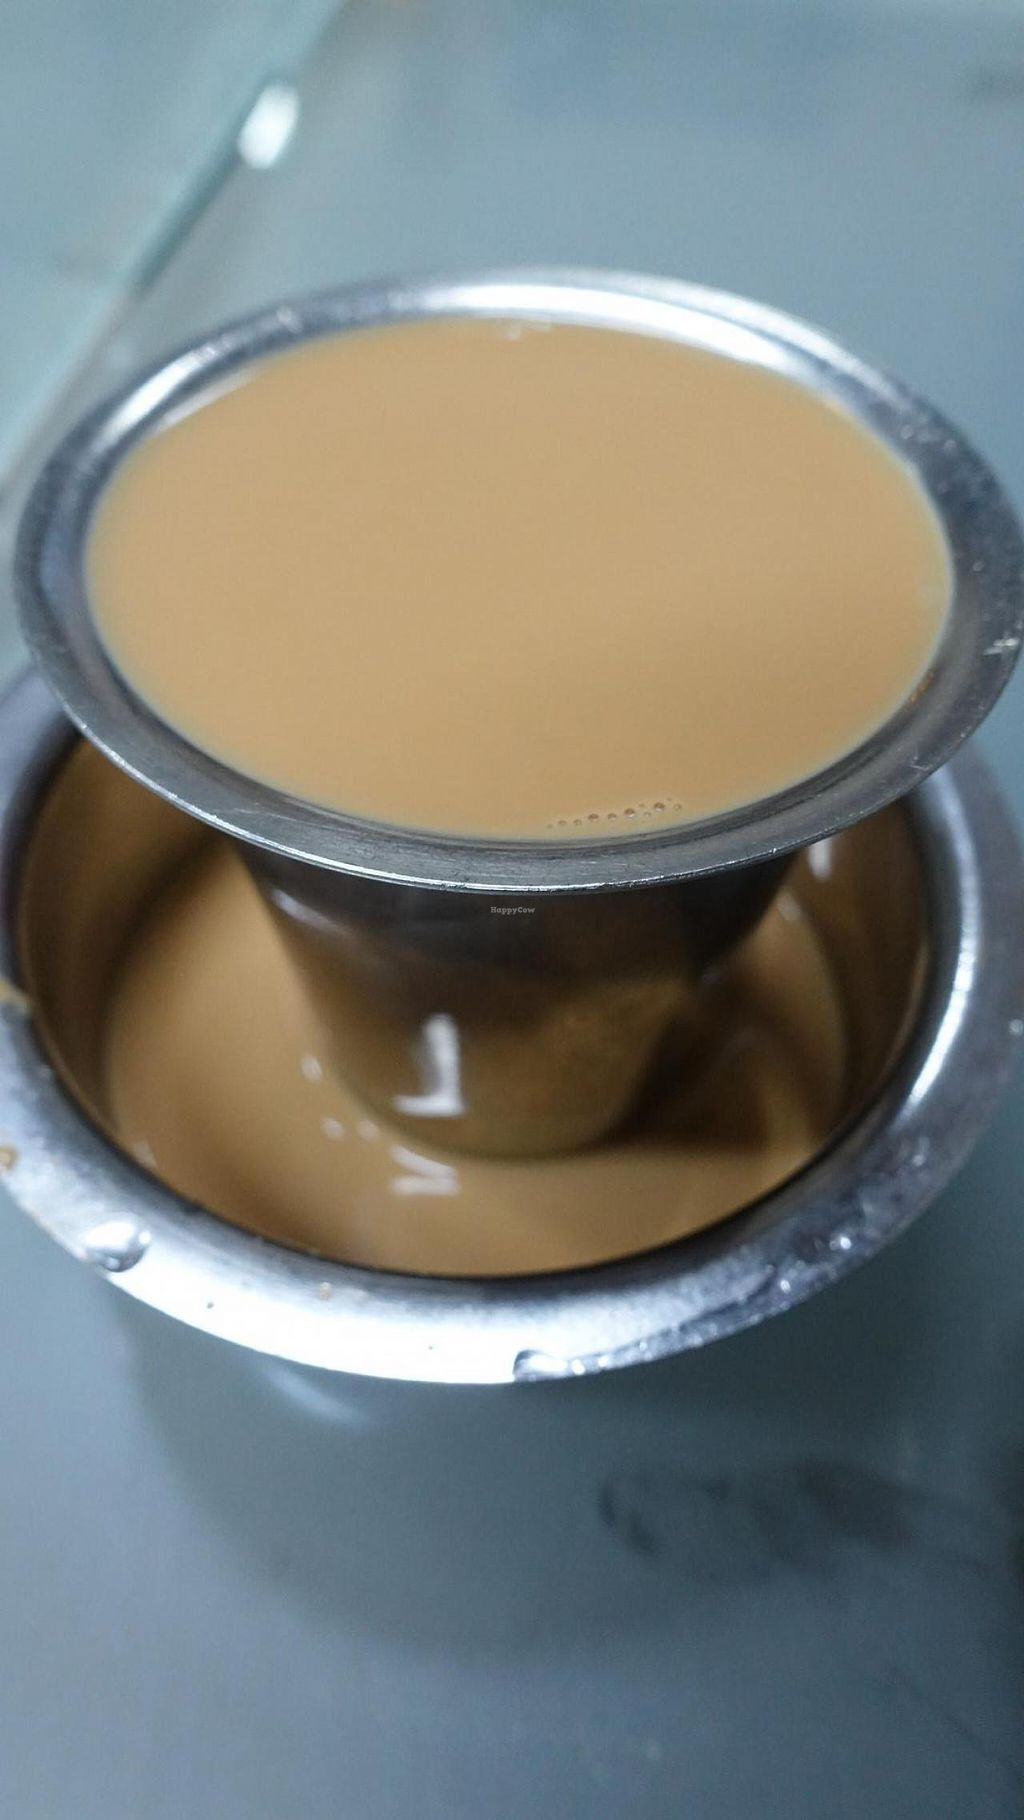 """Photo of Mani Iyer Mess  by <a href=""""/members/profile/JimmySeah"""">JimmySeah</a> <br/>ginger tea <br/> May 25, 2015  - <a href='/contact/abuse/image/54258/103379'>Report</a>"""